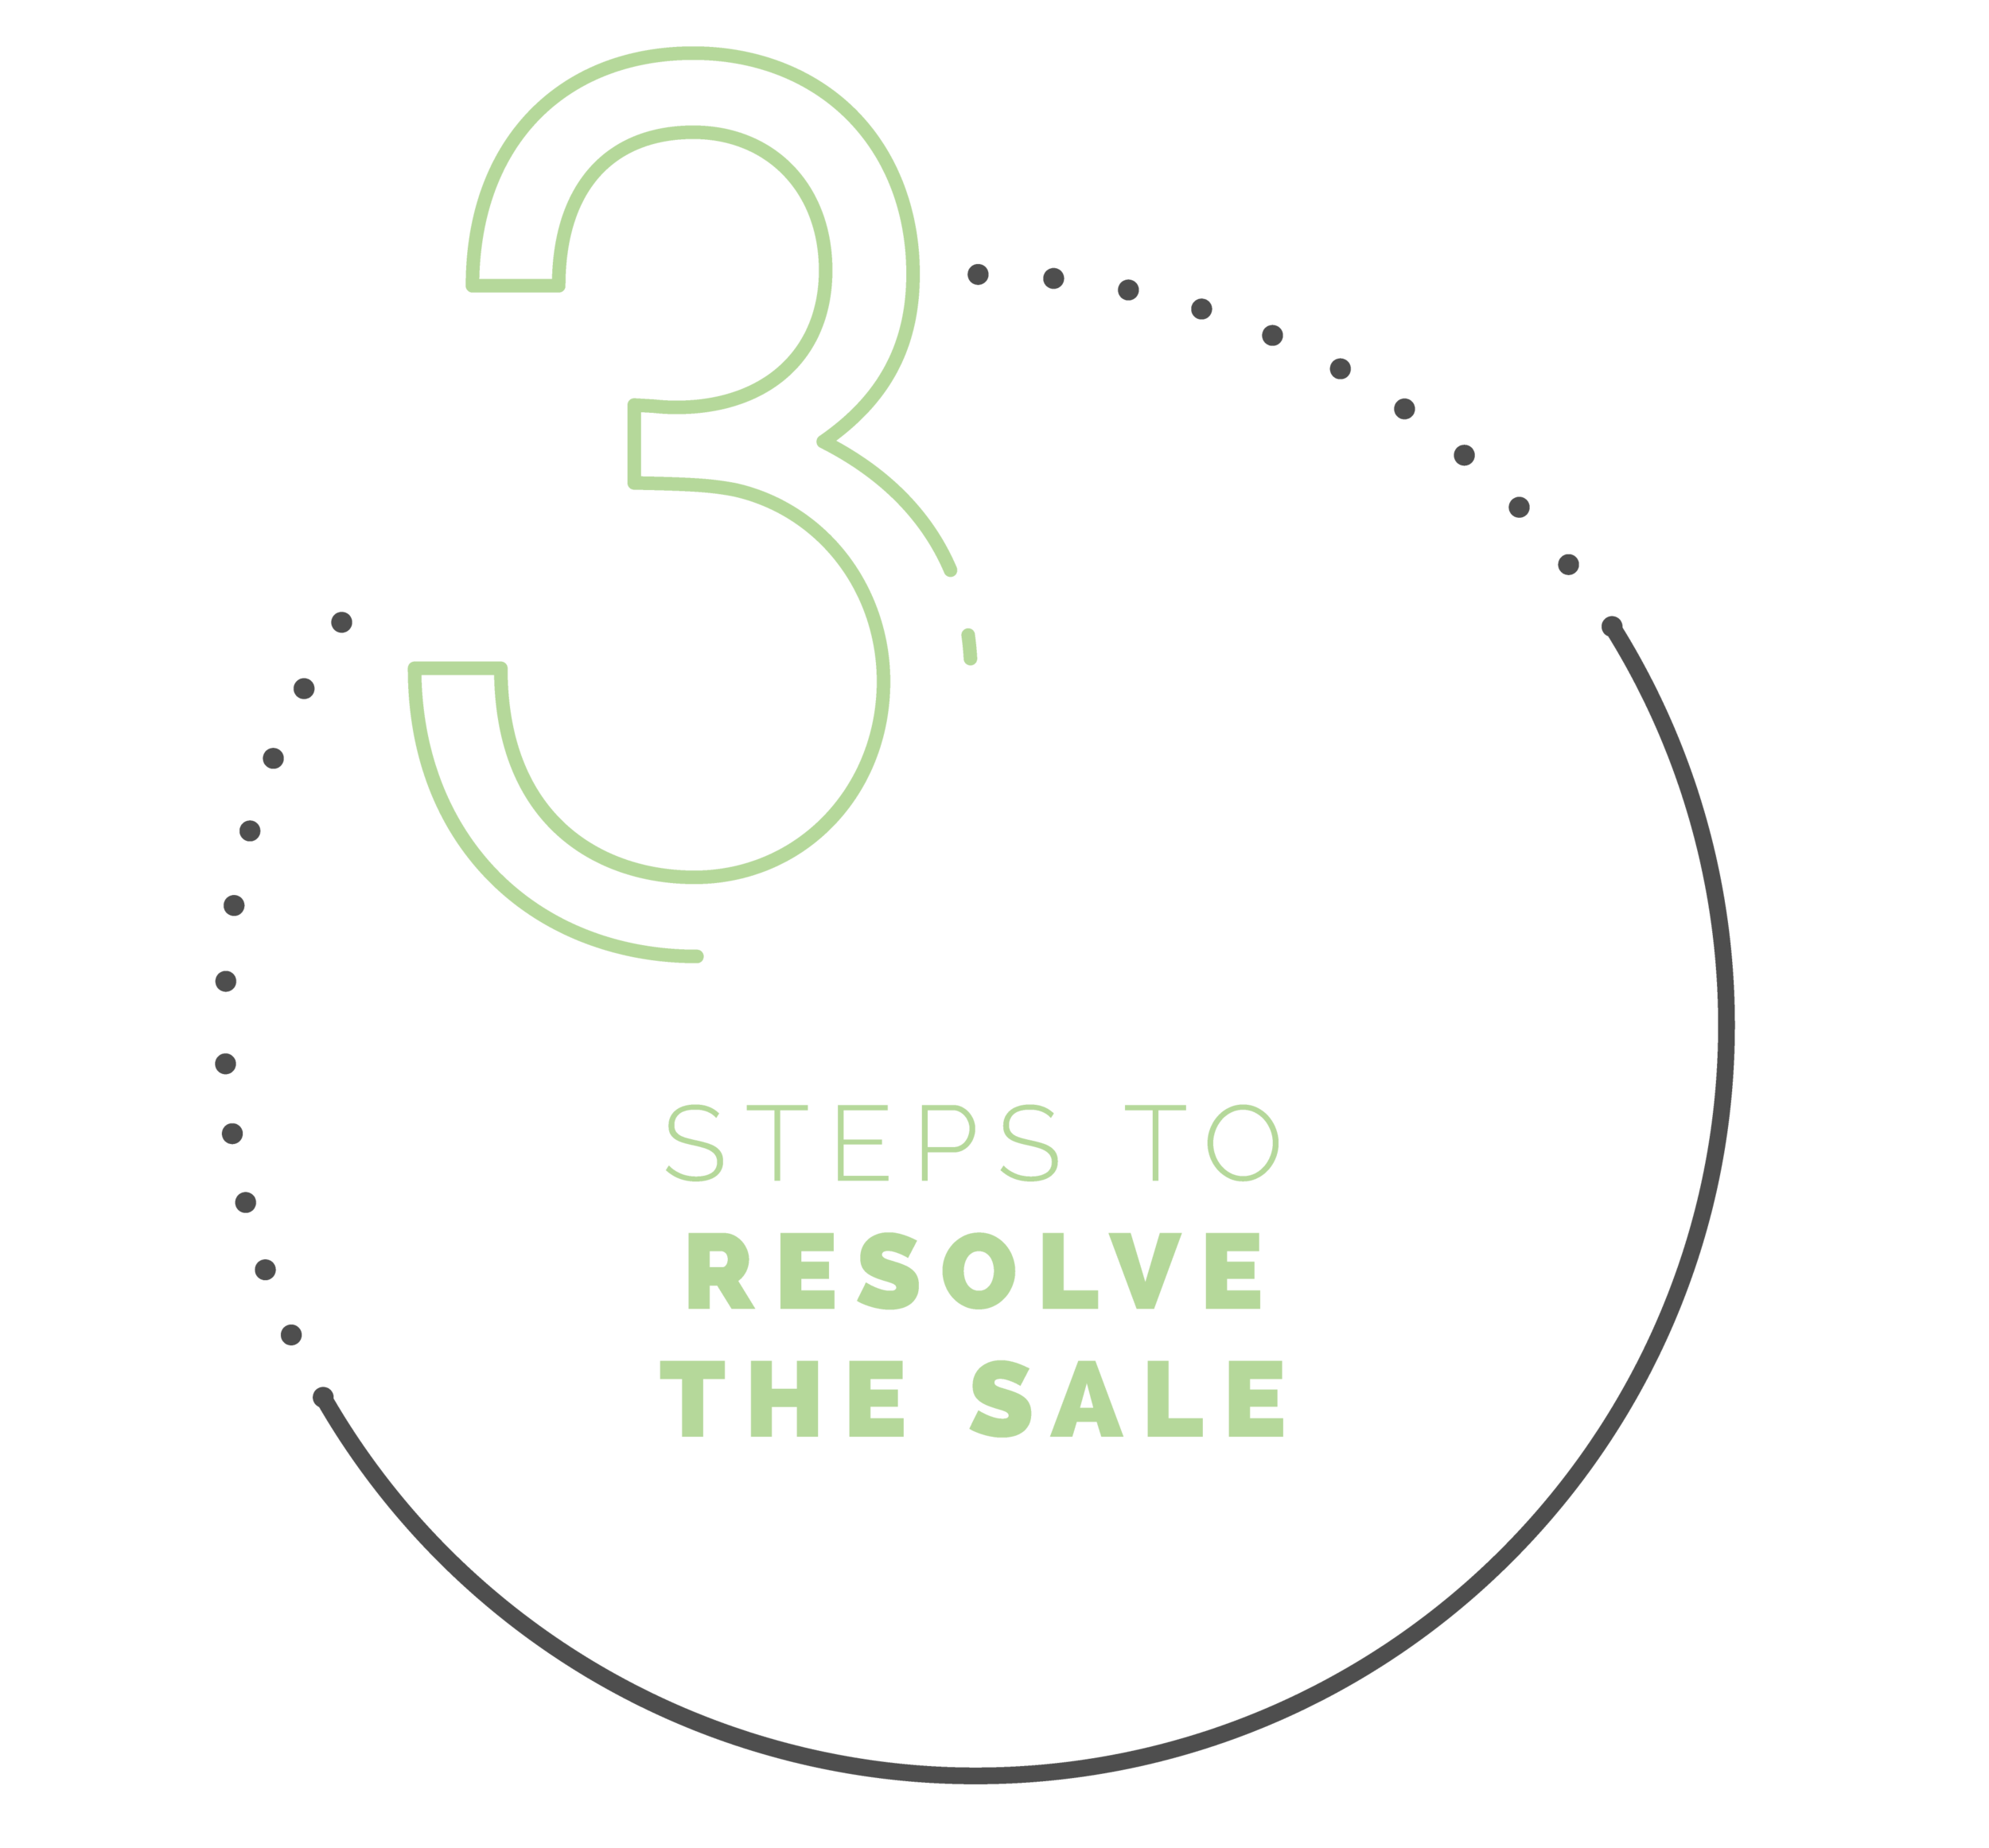 3 steps to resolve the sale.